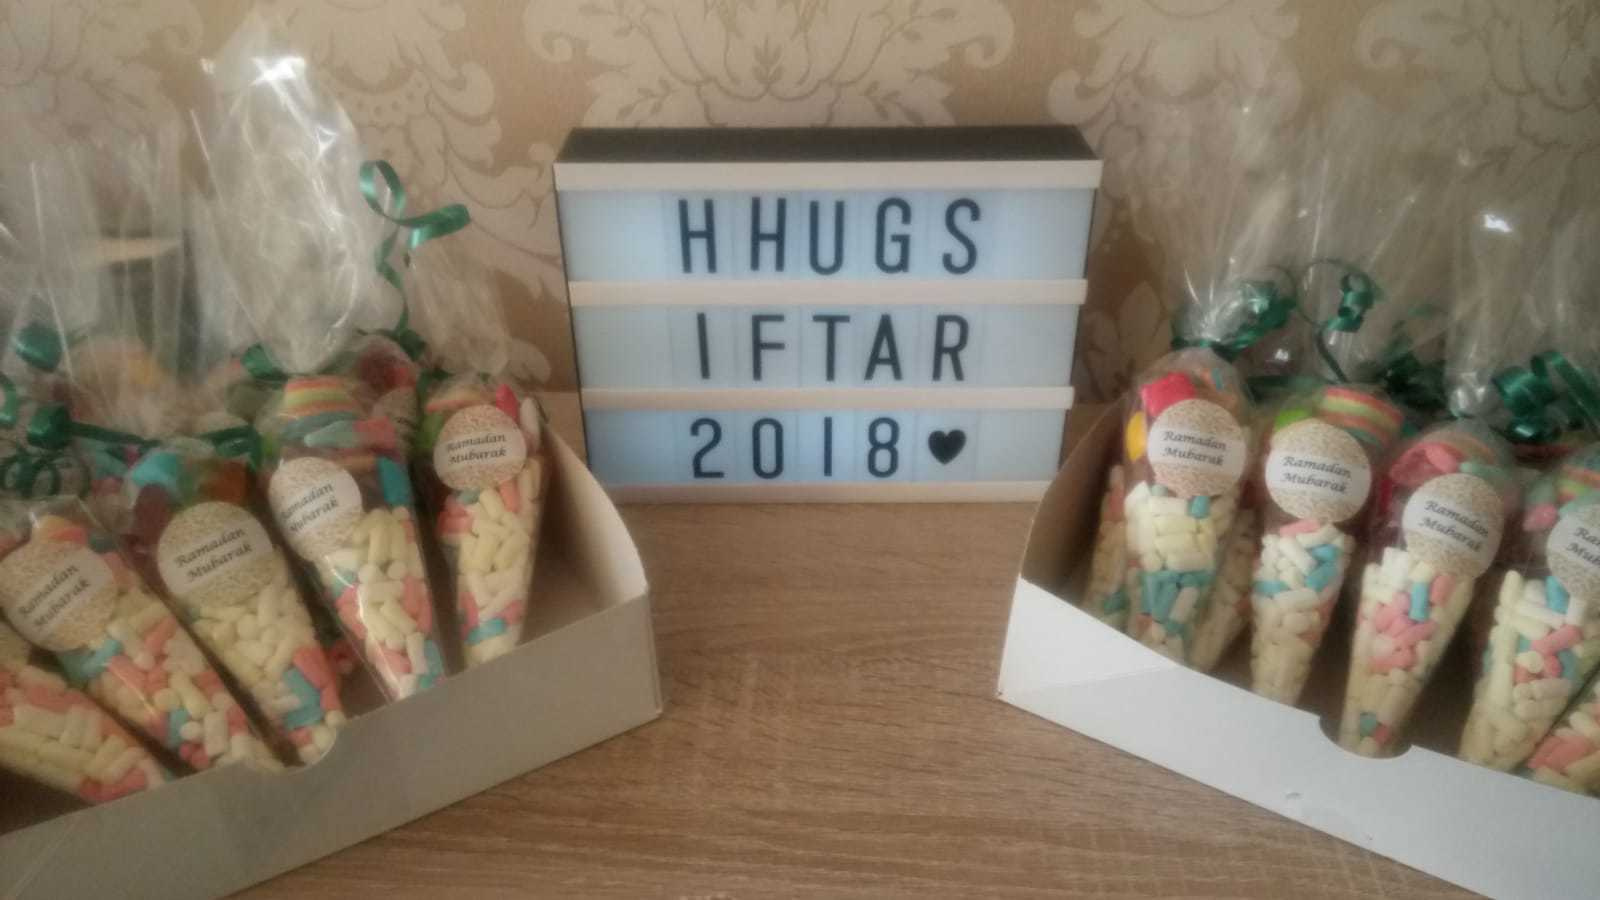 How I hosted an iftar for HHUGS